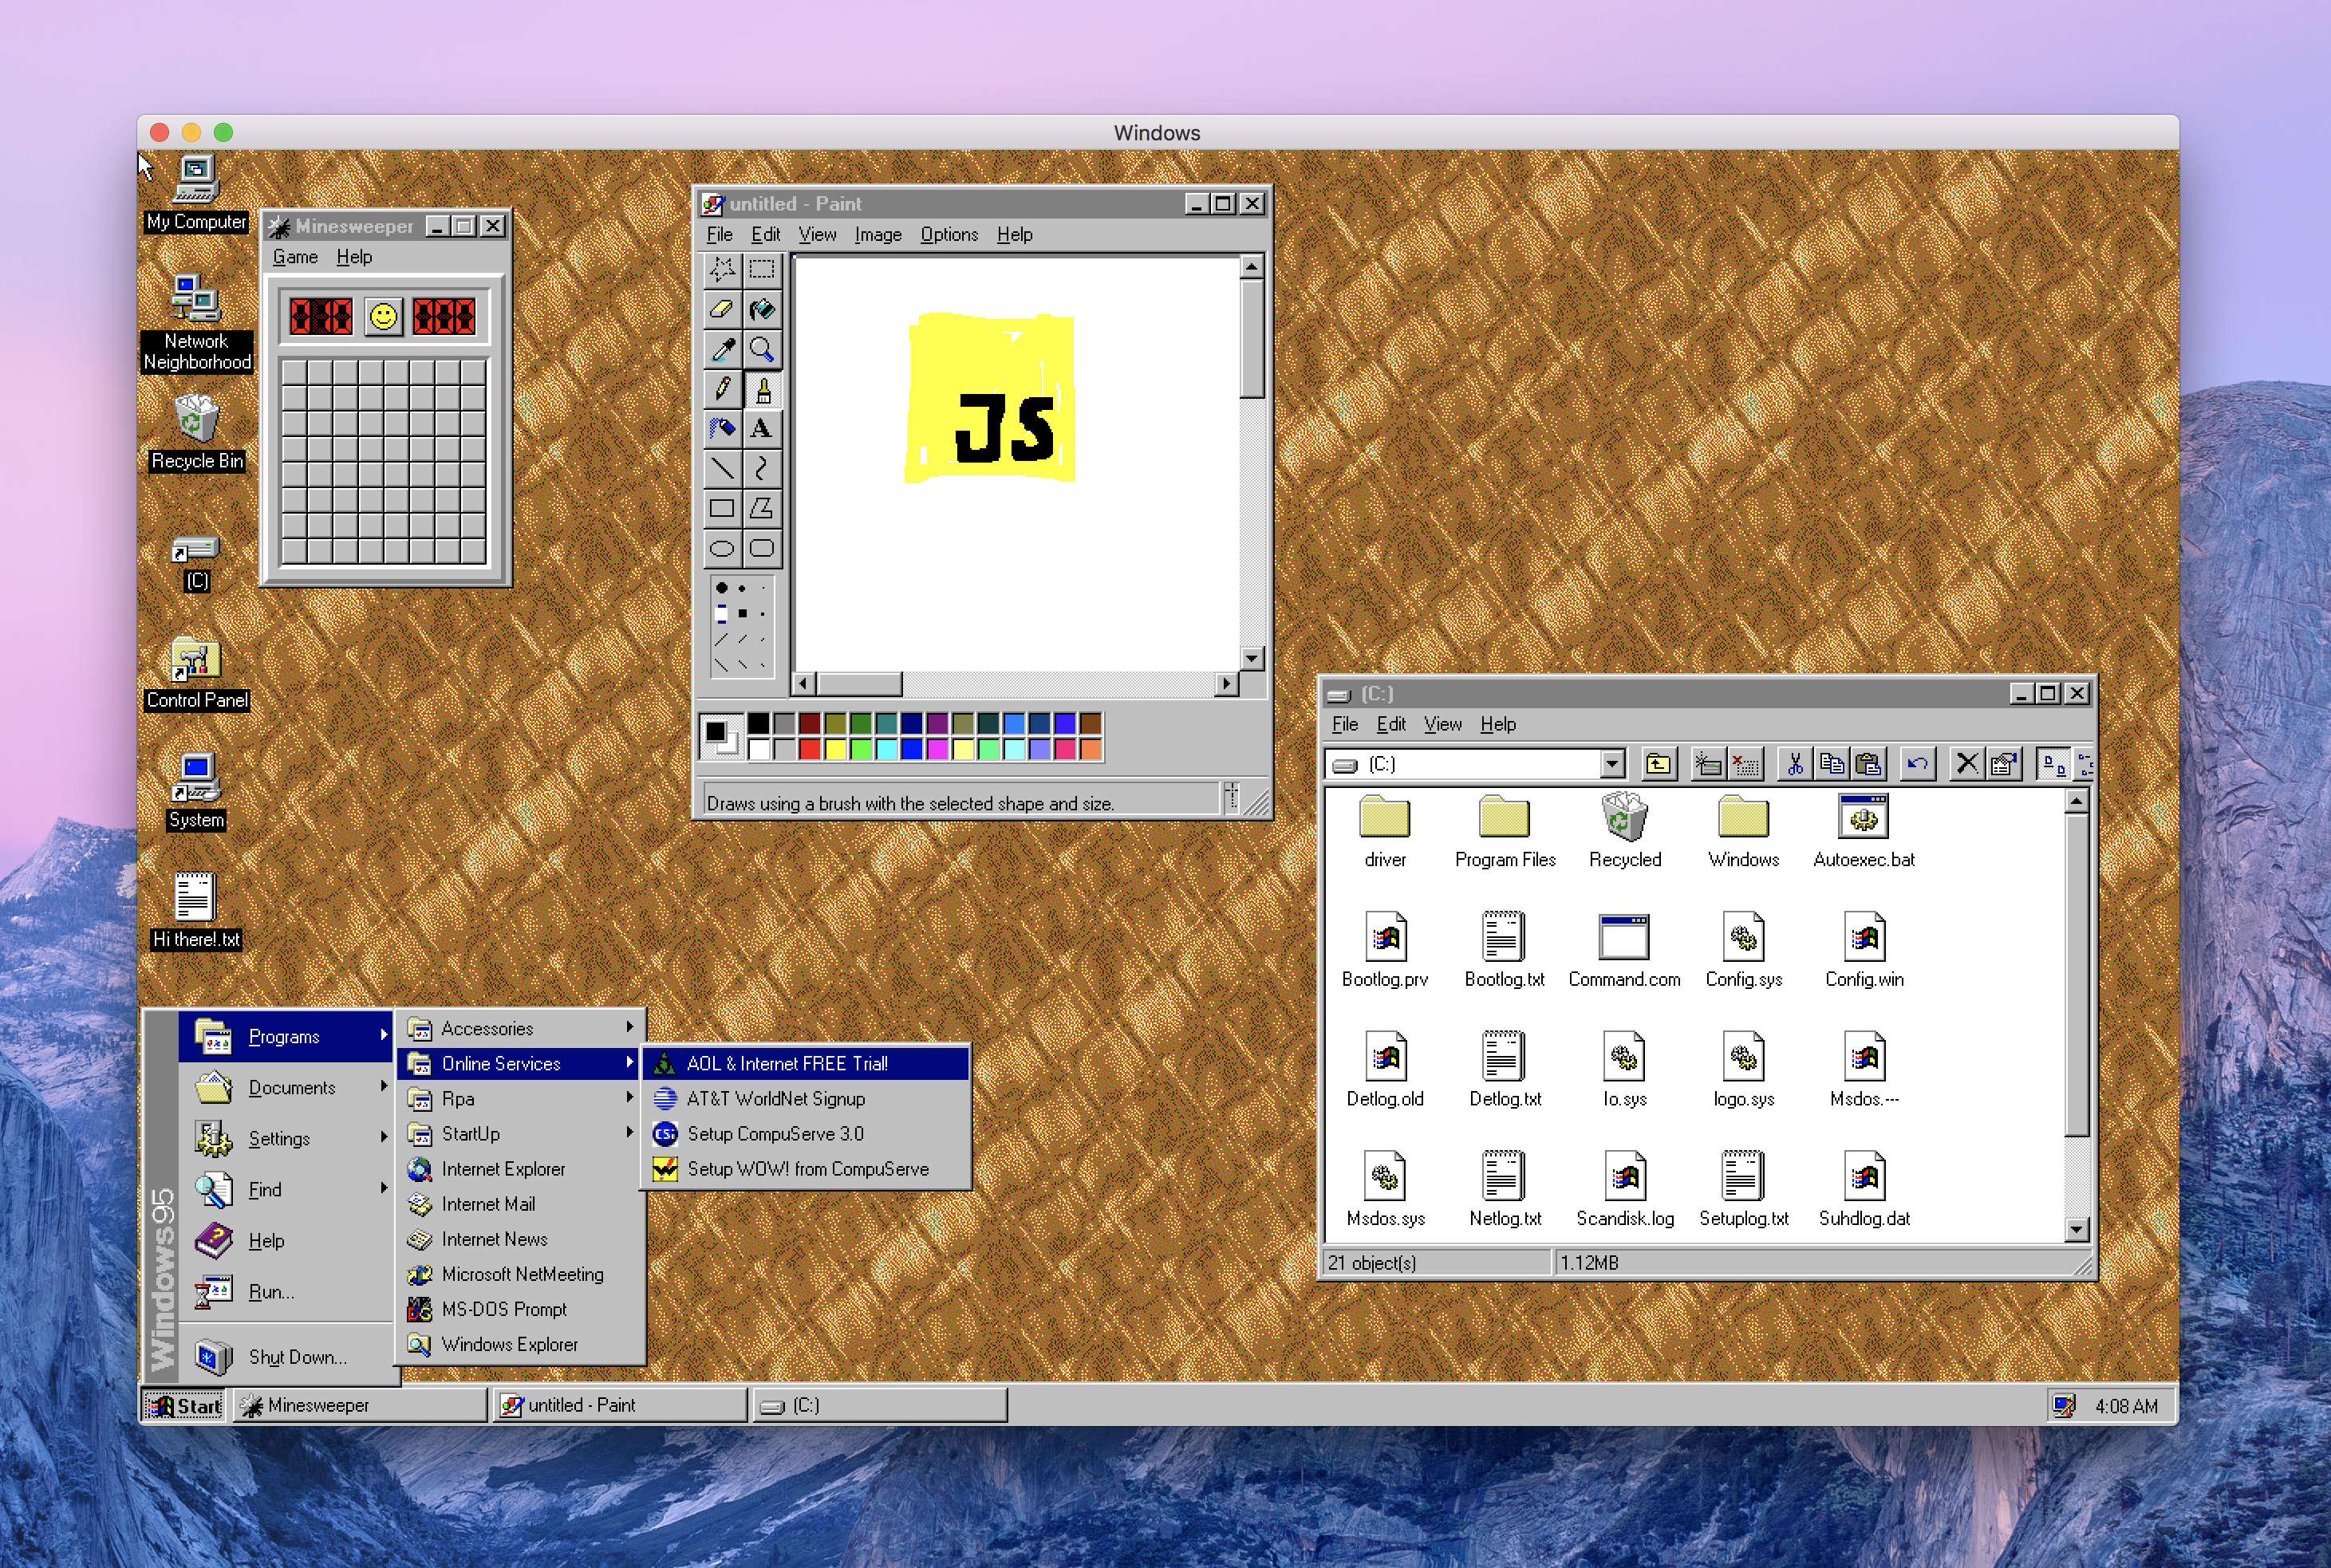 Windows95 for Windows